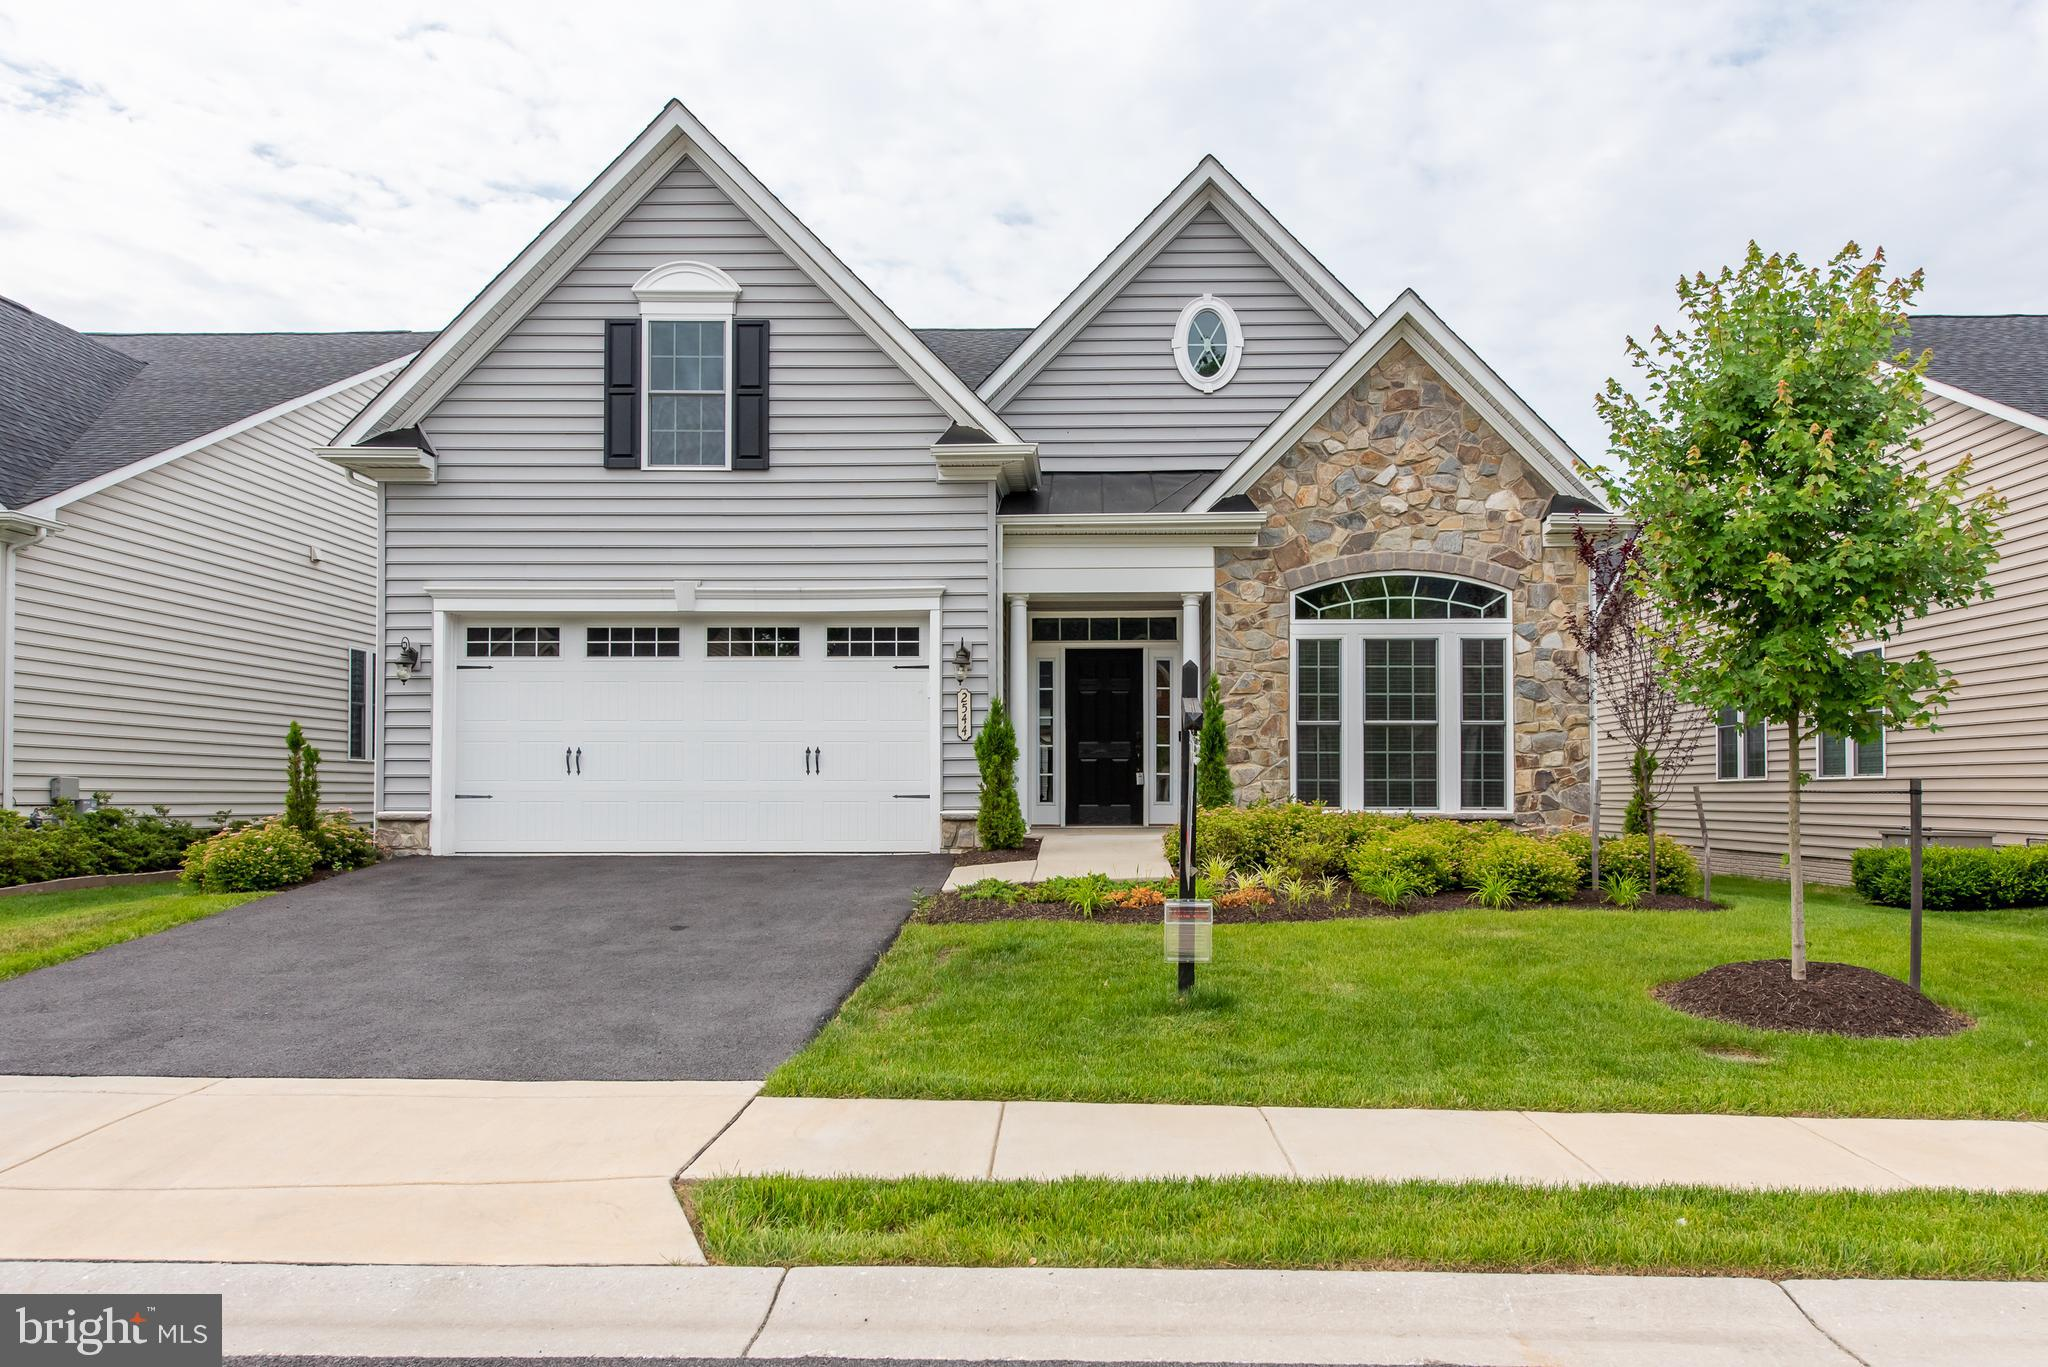 2544 SOPHIA CHASE DRIVE, MARRIOTTSVILLE, MD 21104